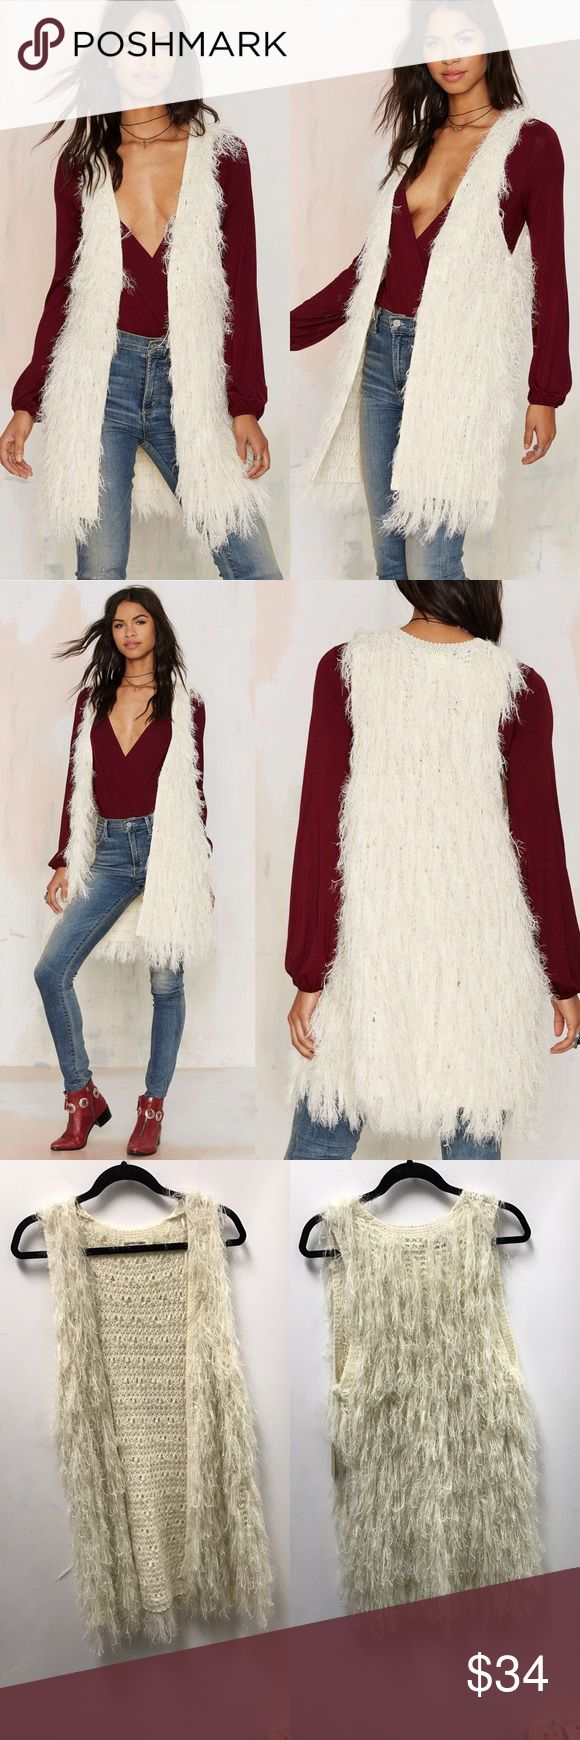 Faux Mo Shaggy Vest No mo FOMO. The Faux Mo Vest is made in an ivory knit and features shaggy faux fur detail, open front, and mid thigh length. Killer over a bell sleeve bodycon, or teamed up with a suede vest, chelsea boots, and the center of attention.  *Spandex/Acrylic  *Runs true to size  *Model is wearing size S/M  *Hand wash cold  *Imported cotton candy Sweaters